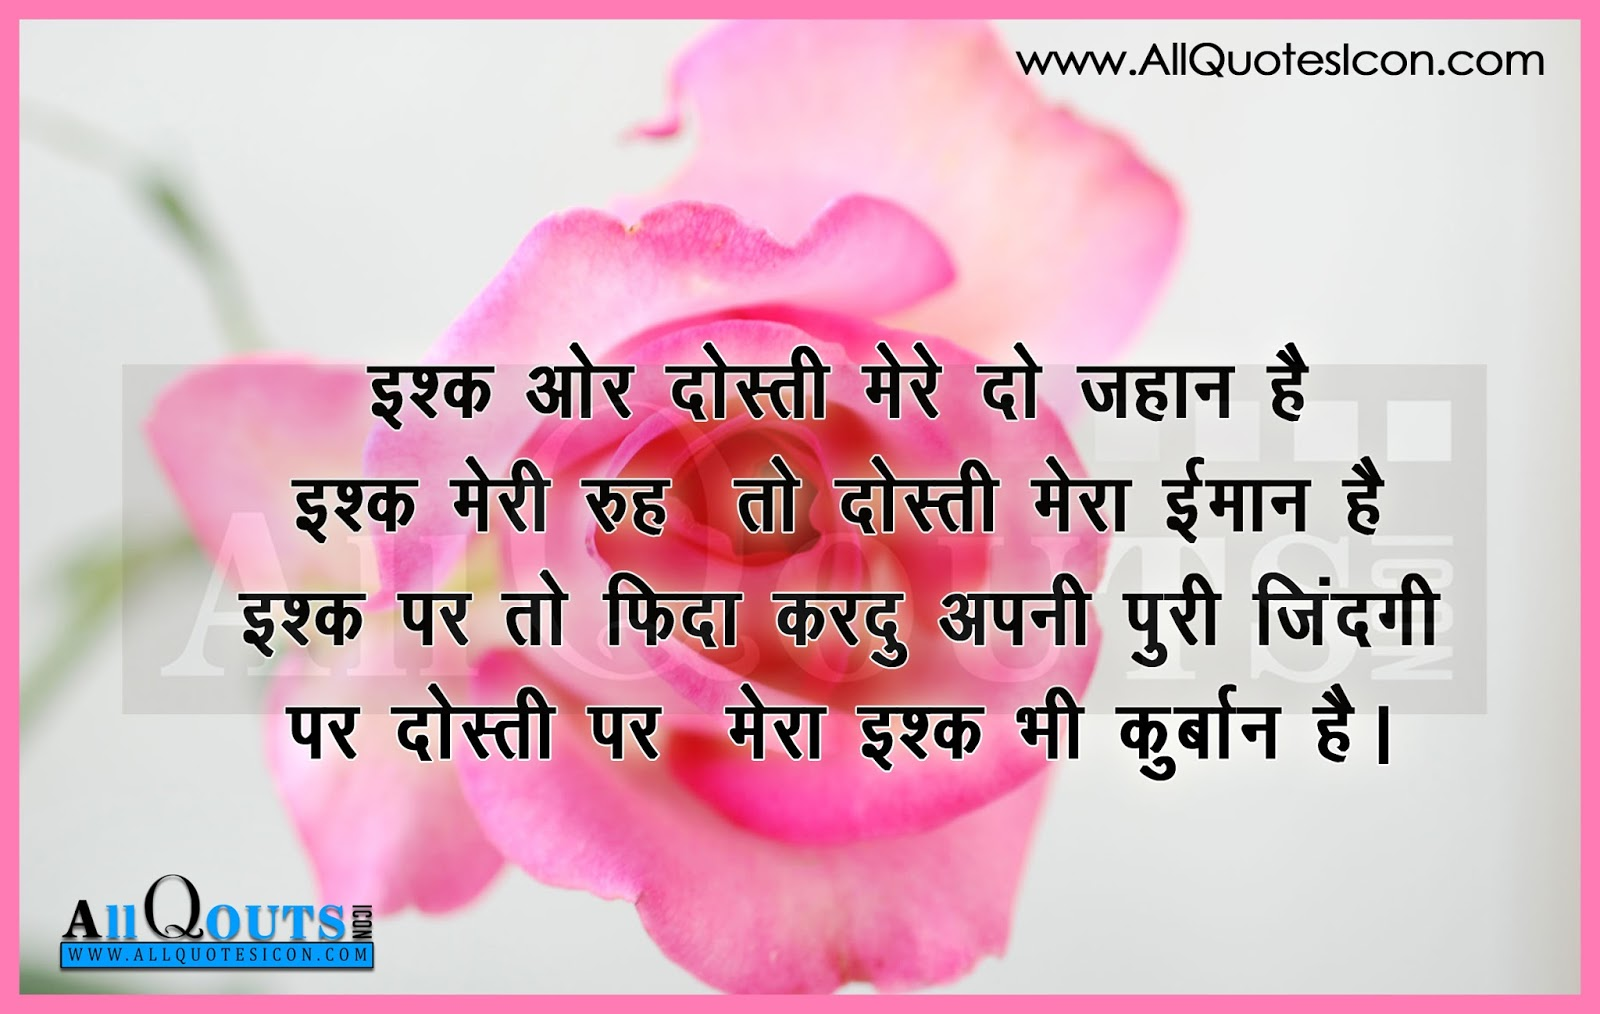 Friendship Quotes in Hindi , Hindi Quotes 10:30:00 AM